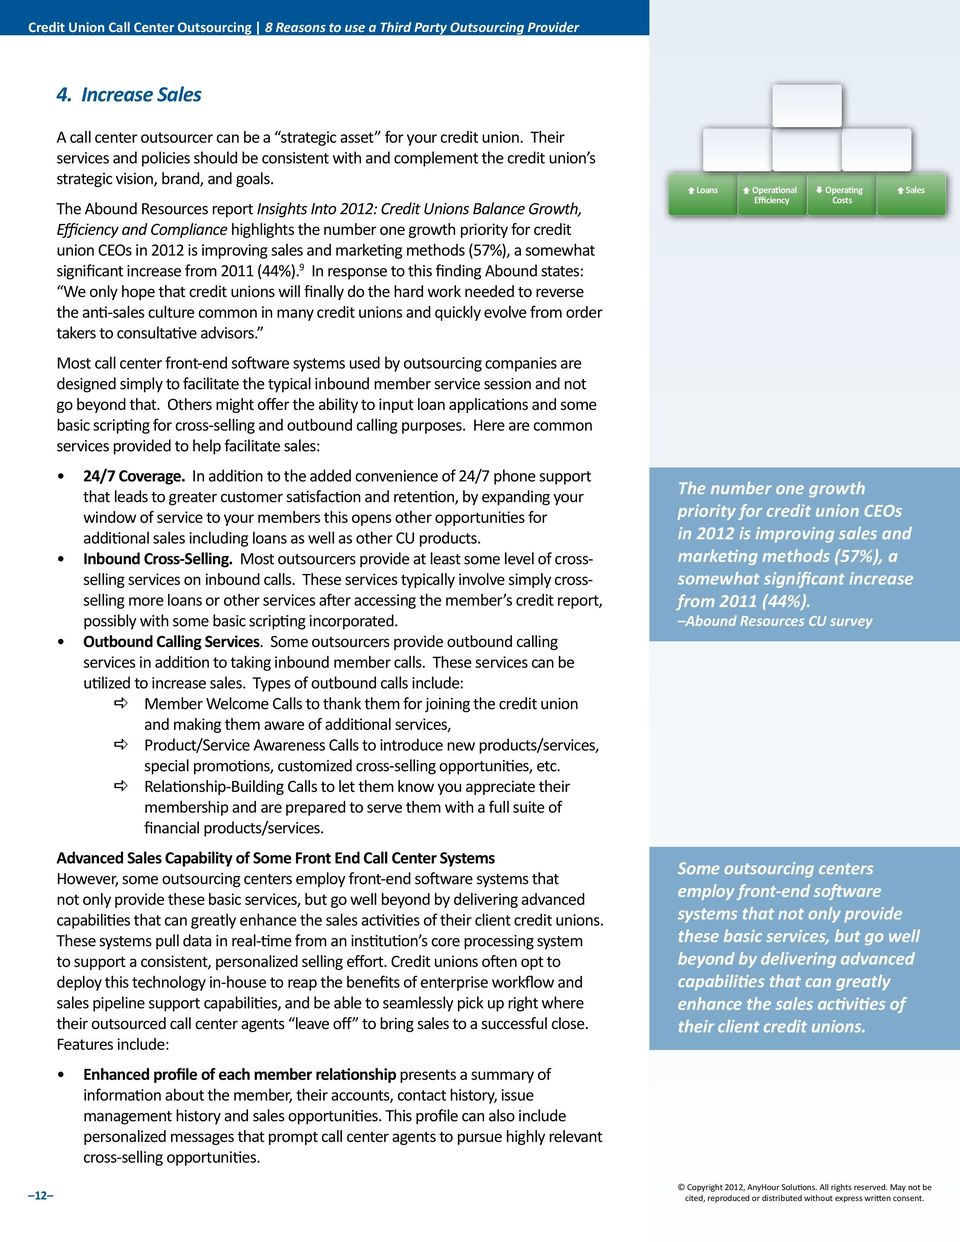 The Abound Resources report Insights Into 2012: Credit Unions Balance Growth, Efficiency and Compliance highlights the number one growth priority for credit union CEOs in 2012 is improving sales and